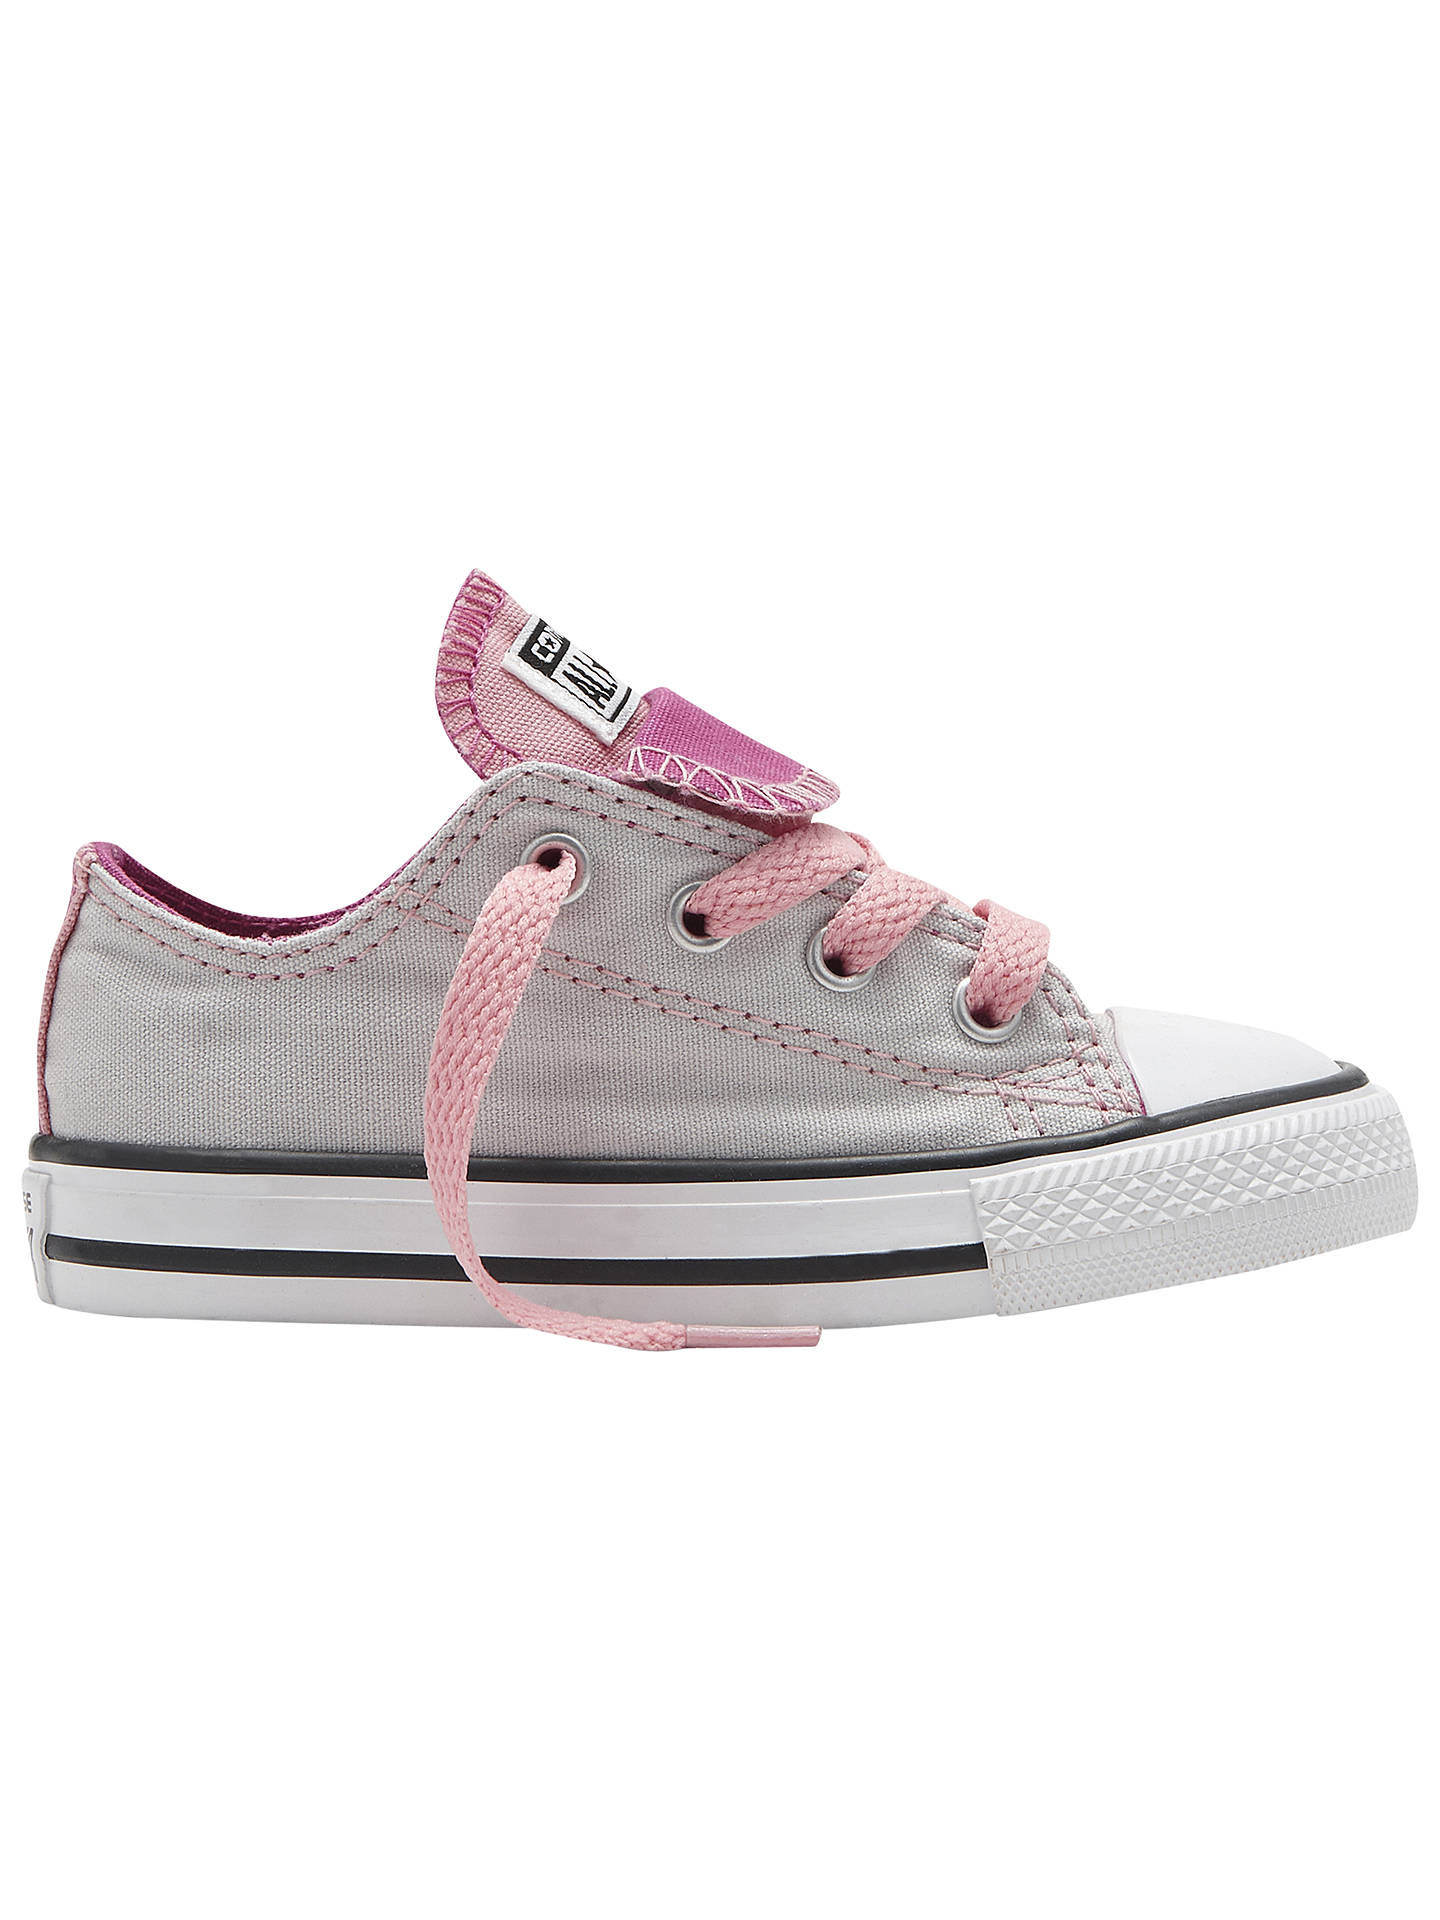 8d6baabae88f Converse Children s Chuck Taylor All Star Double Tongue Trainers ...